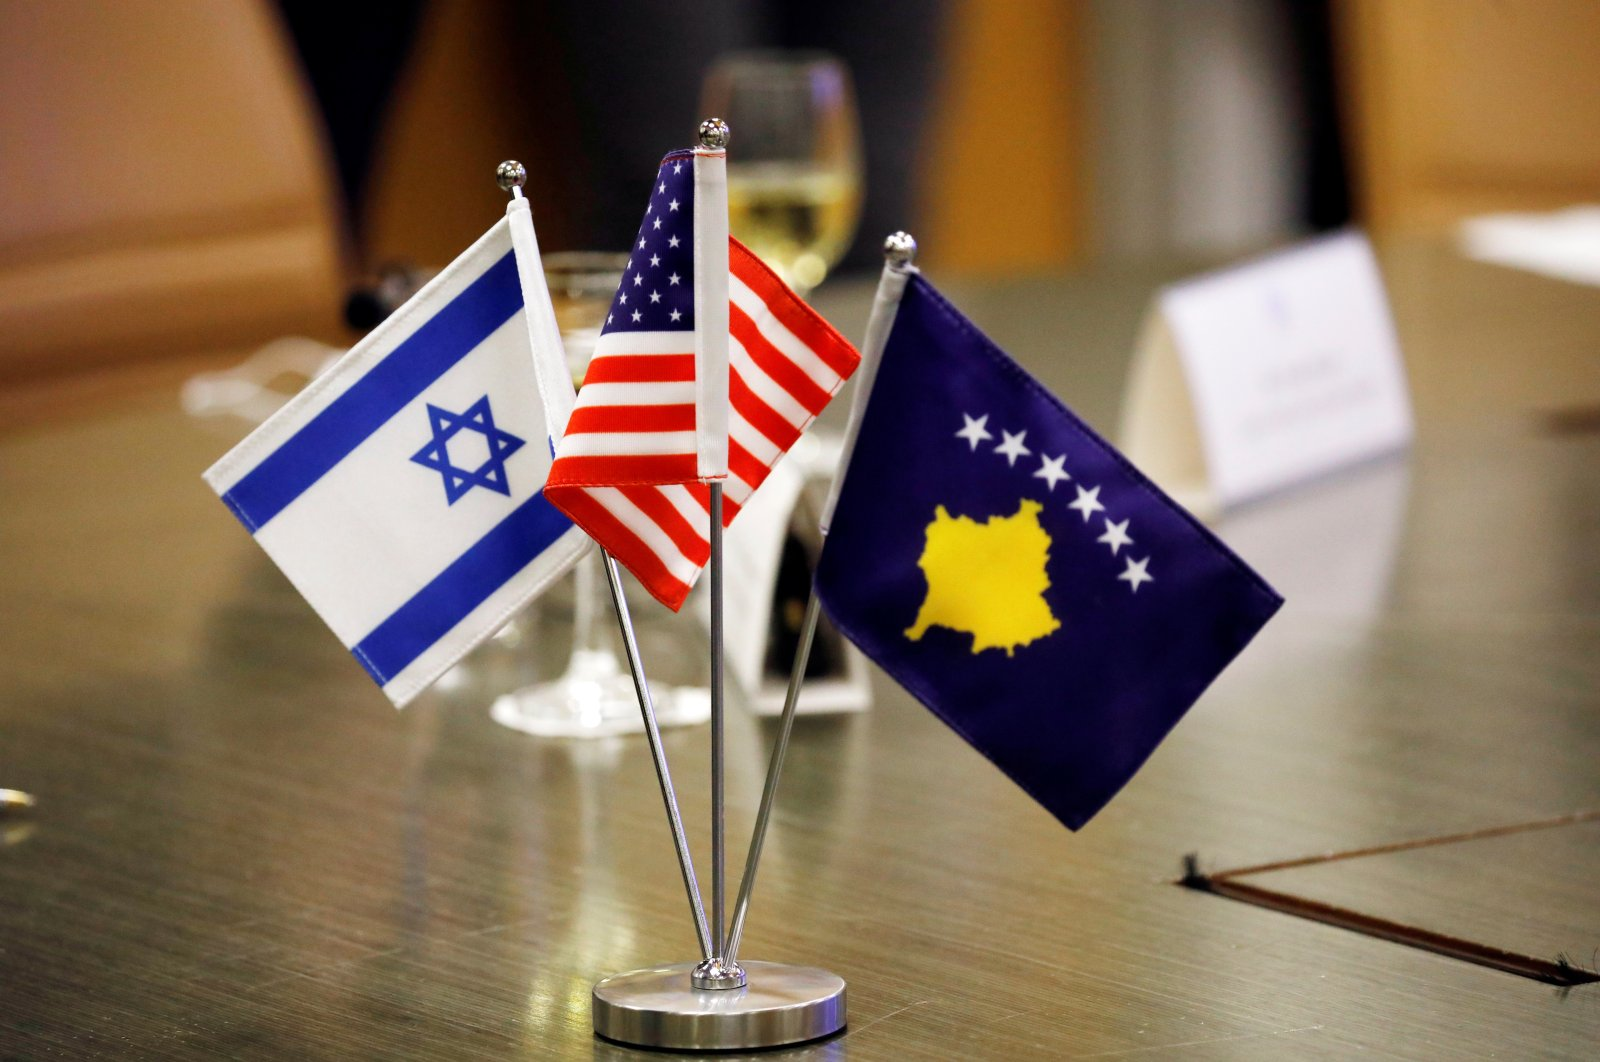 The flags of Israel, Kosovo and the U.S. are seen on a desk during a virtual ceremony to sign an agreement establishing diplomatic relations between Israel and Kosovo in the Israeli foreign ministry in Jerusalem February 1, 2021. (Reuters Photo)